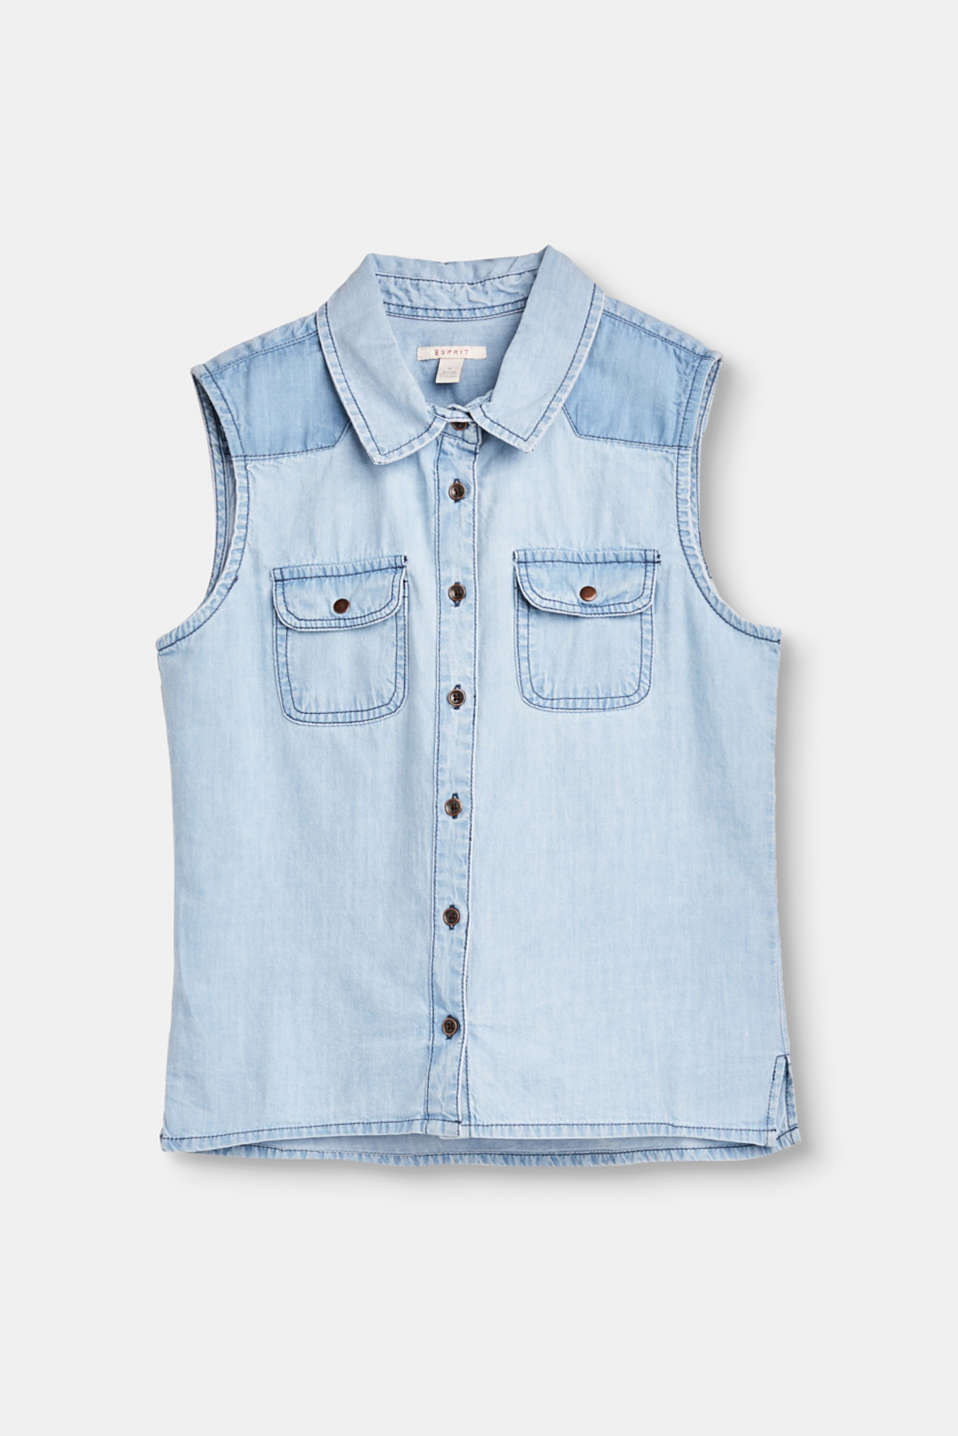 This sleeveless, lightweight blouse in soft denim is the perfect separate for spring and summer.